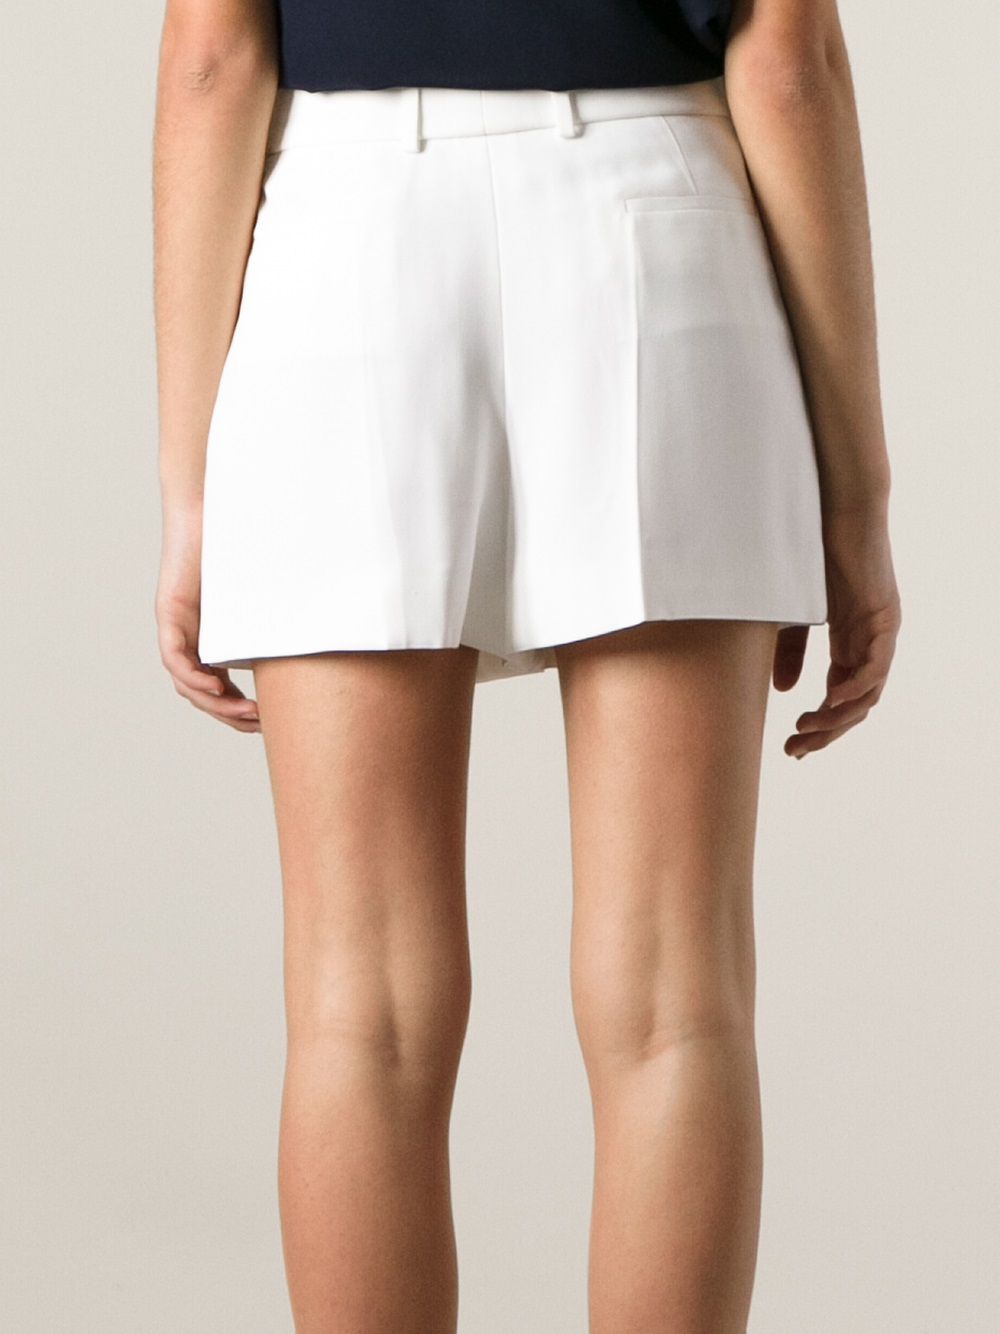 cheswick-stand.tk: tailored bermuda shorts ladies. From The Community. Amazon Try Prime All LEE Women's Straight Fit Tailored Chino Short, White Embroidered, 6. by LEE. $ $ 21 28 $ Prime. FREE Shipping on eligible orders. 3 out of 5 stars 1. LEE Women's Straight Fit Tailored Chino Tuxedo Short.